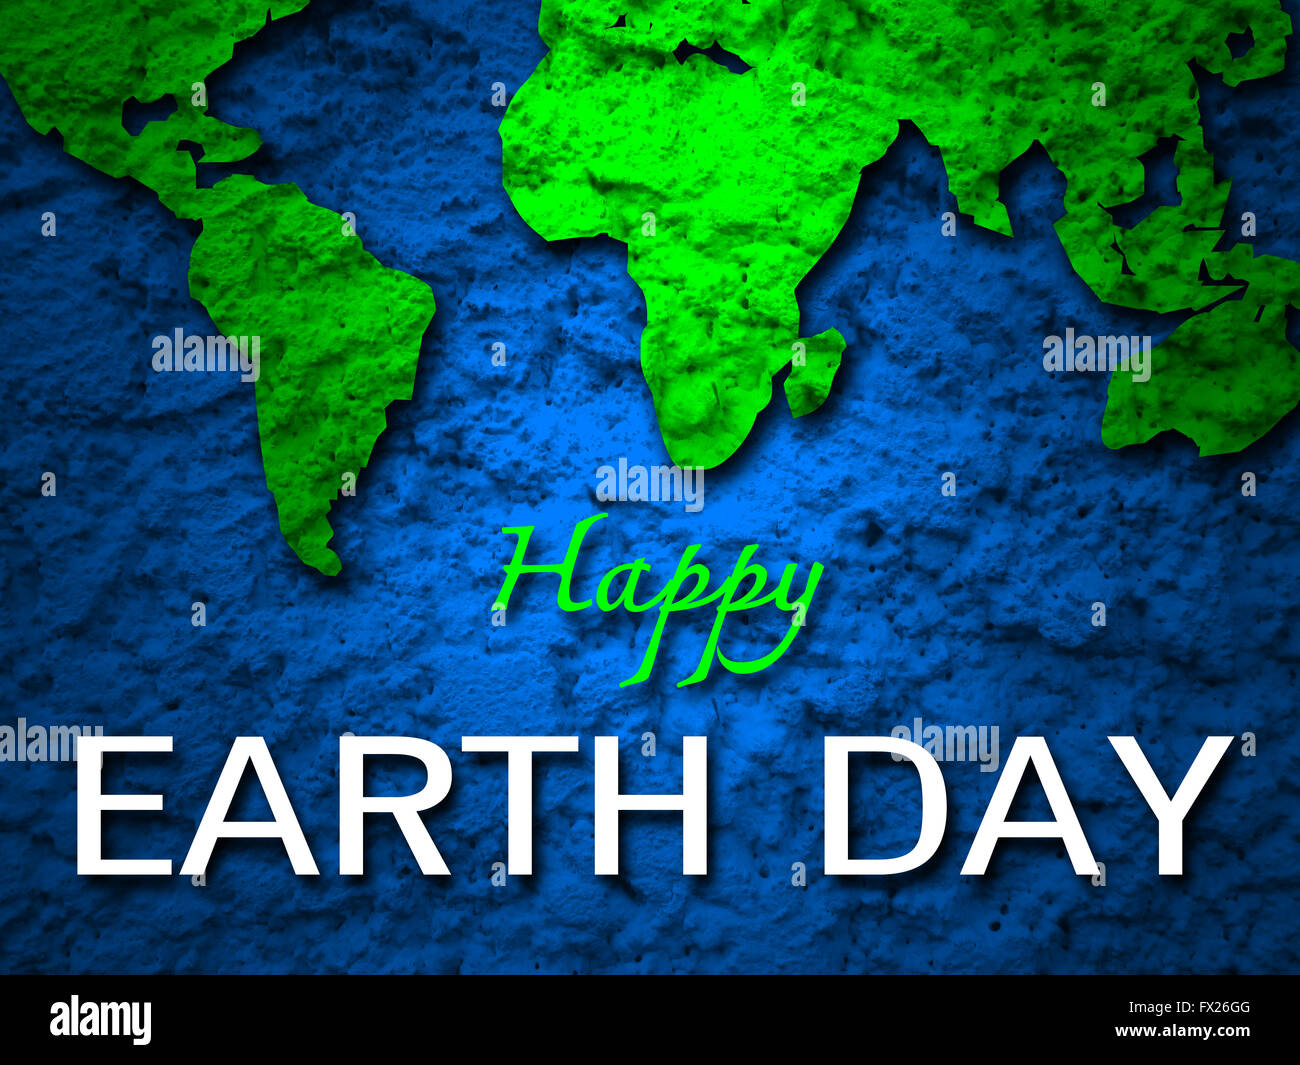 Happy earth day banner green earth map background stock photo happy earth day banner green earth map background gumiabroncs Images